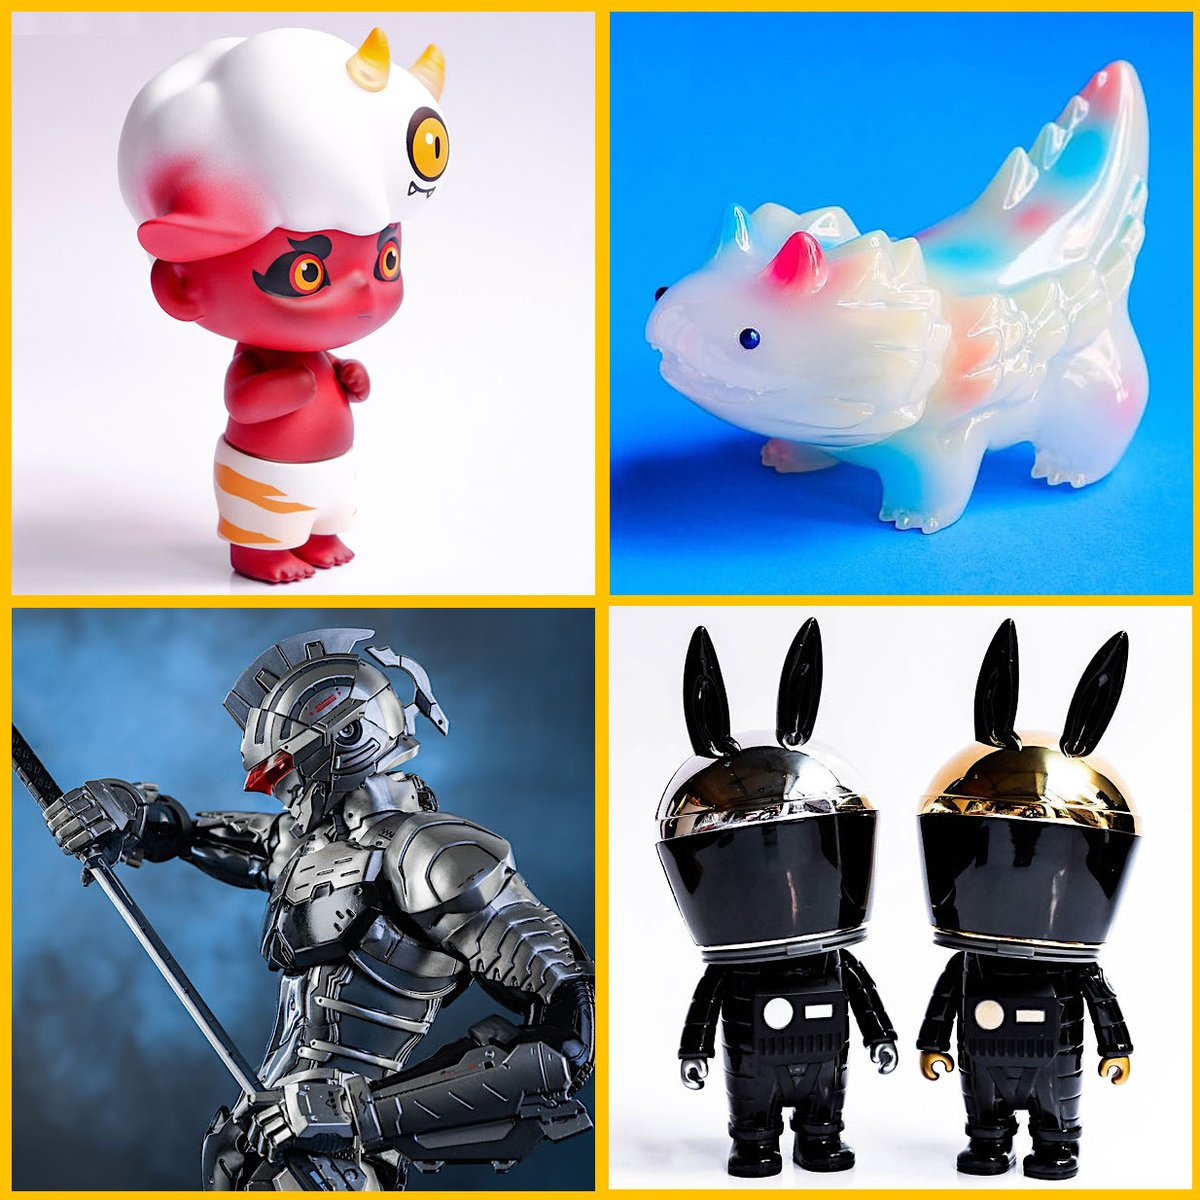 #toynews #onTOYSREVIL: https://t.co/vSvdA5JVLX   Find out what is available in the May 29/2020 Release Schedule for #ThailandToyExpo #TTE2020 (May 28-31)  LIKE Pix on #TOYSREVIL-Instagram: https://t.co/5s1Ck7qhQr  #toysblog #toyblog #CollectMe https://t.co/OrTAoVoScJ